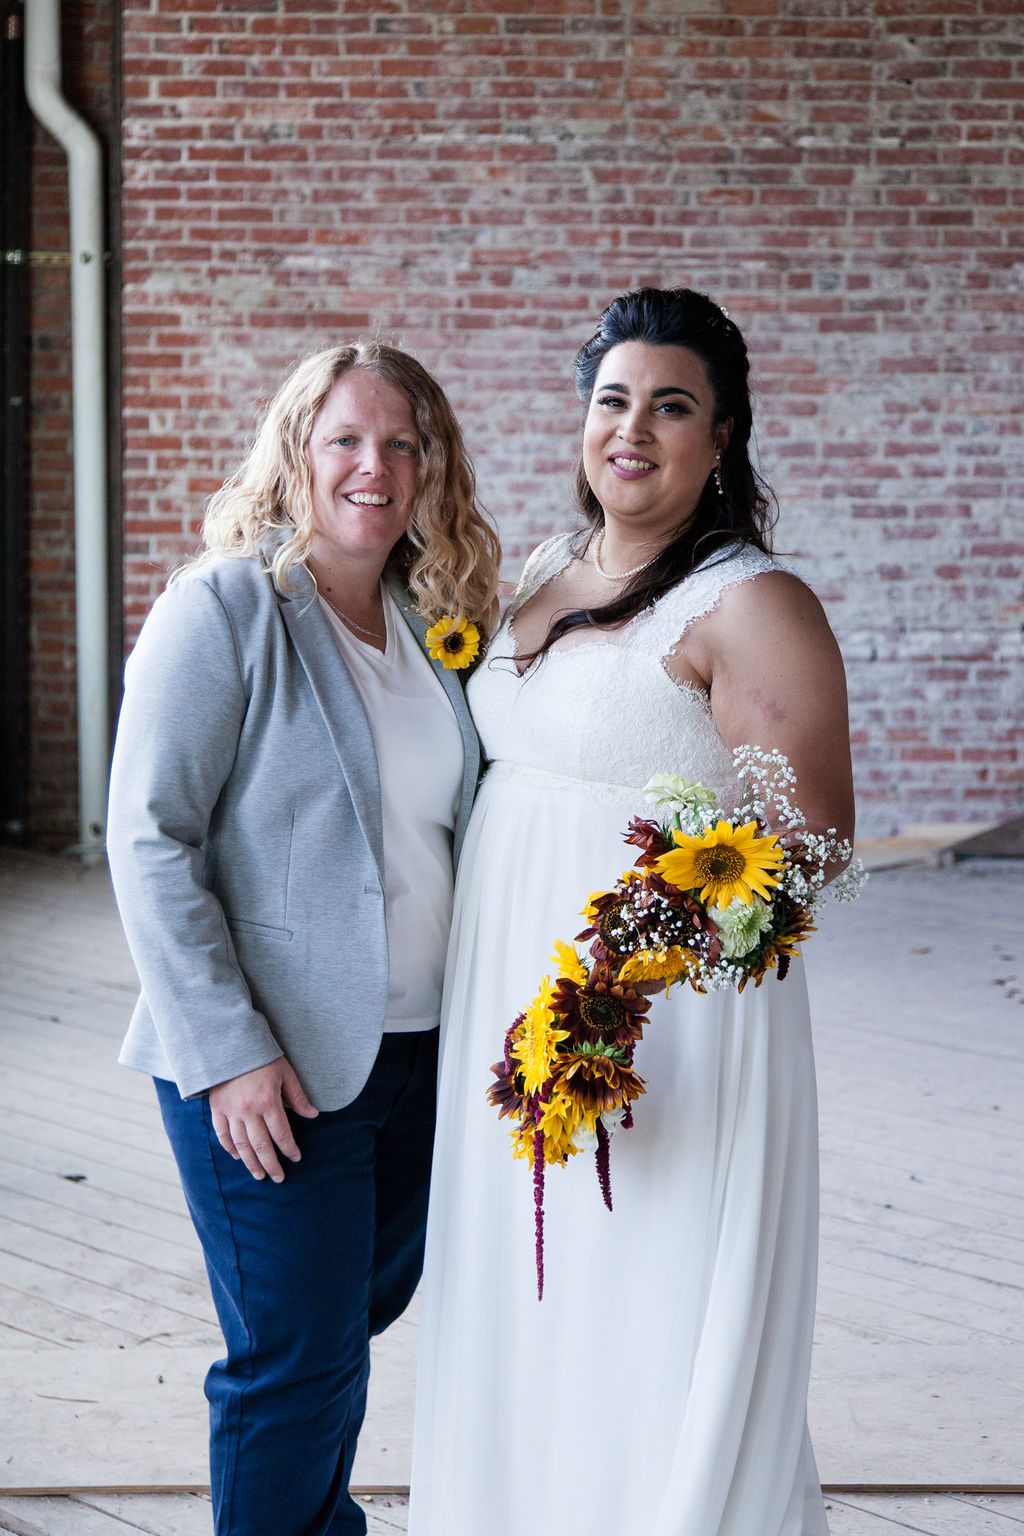 Sunny Fall Schoolhouse Wedding in Moscow, Idaho on Apple Brides